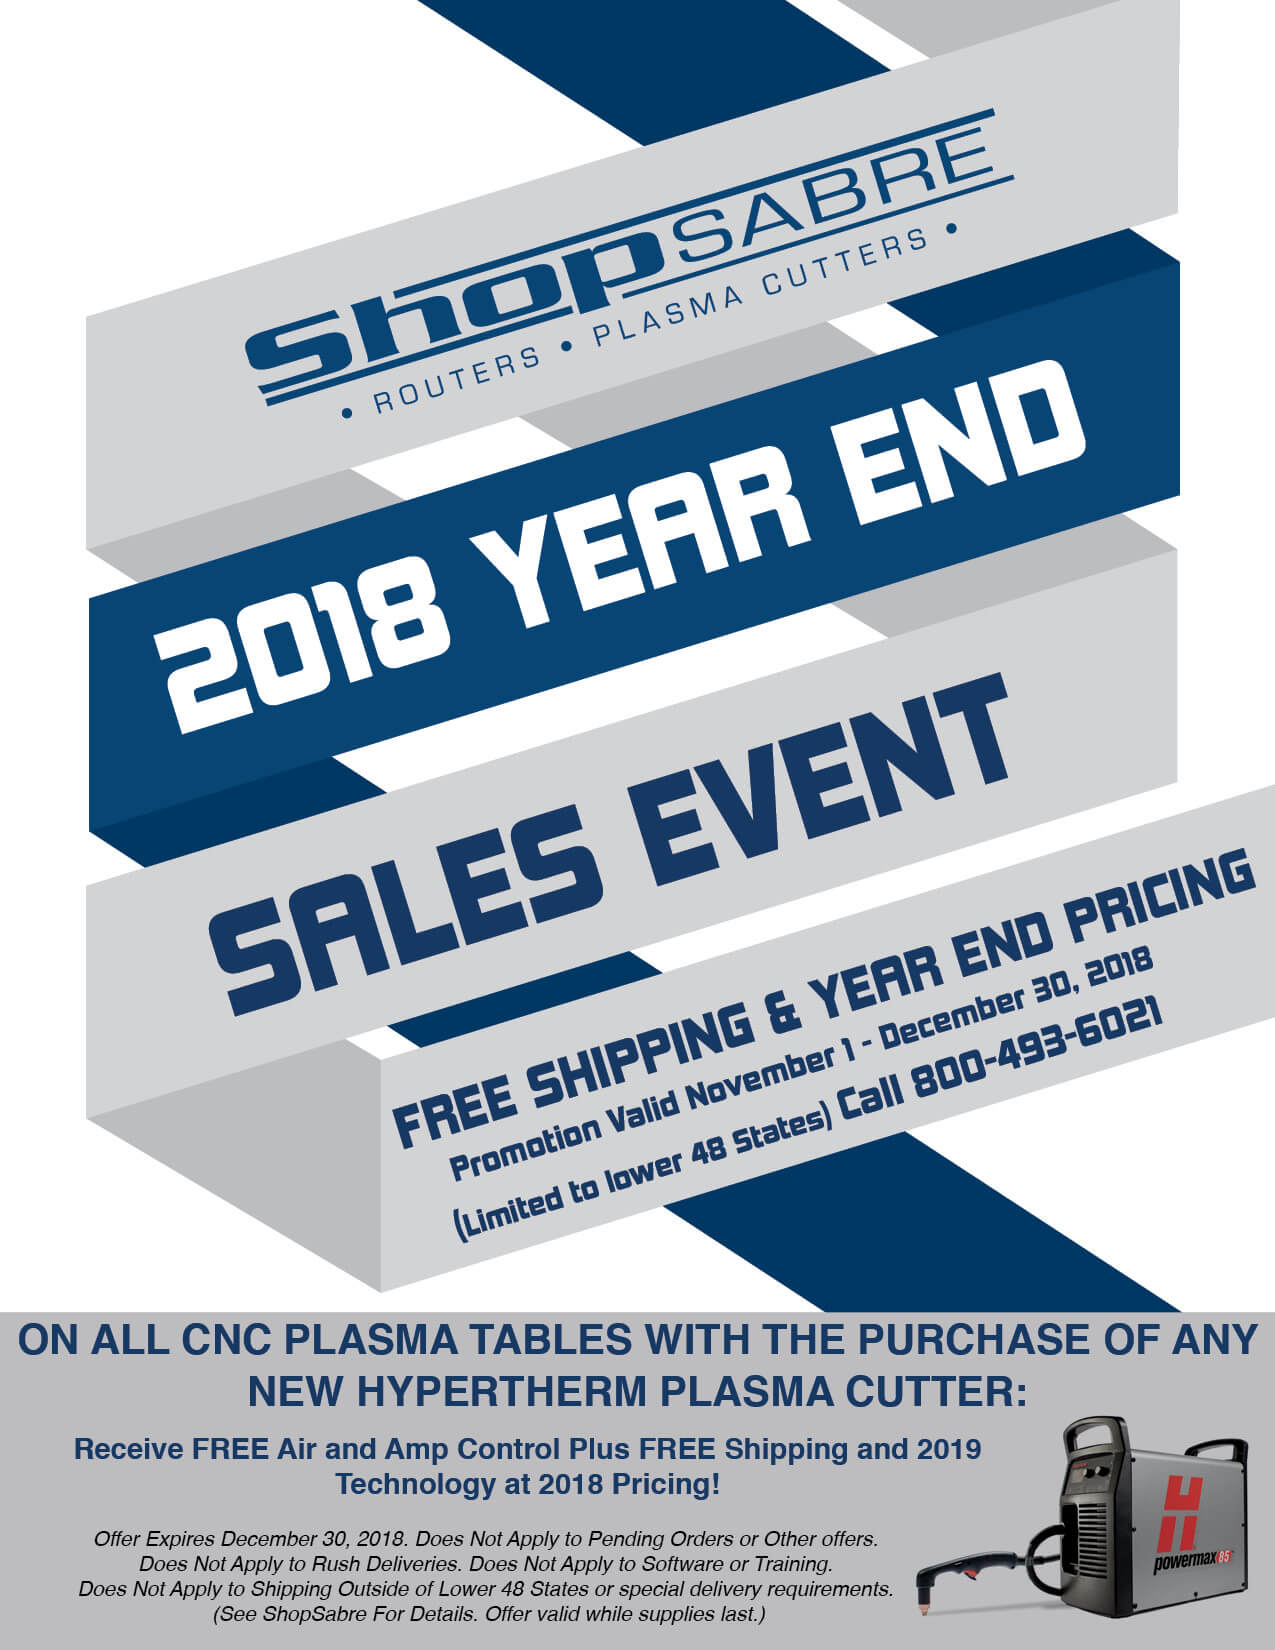 2018 Year End Sales Event